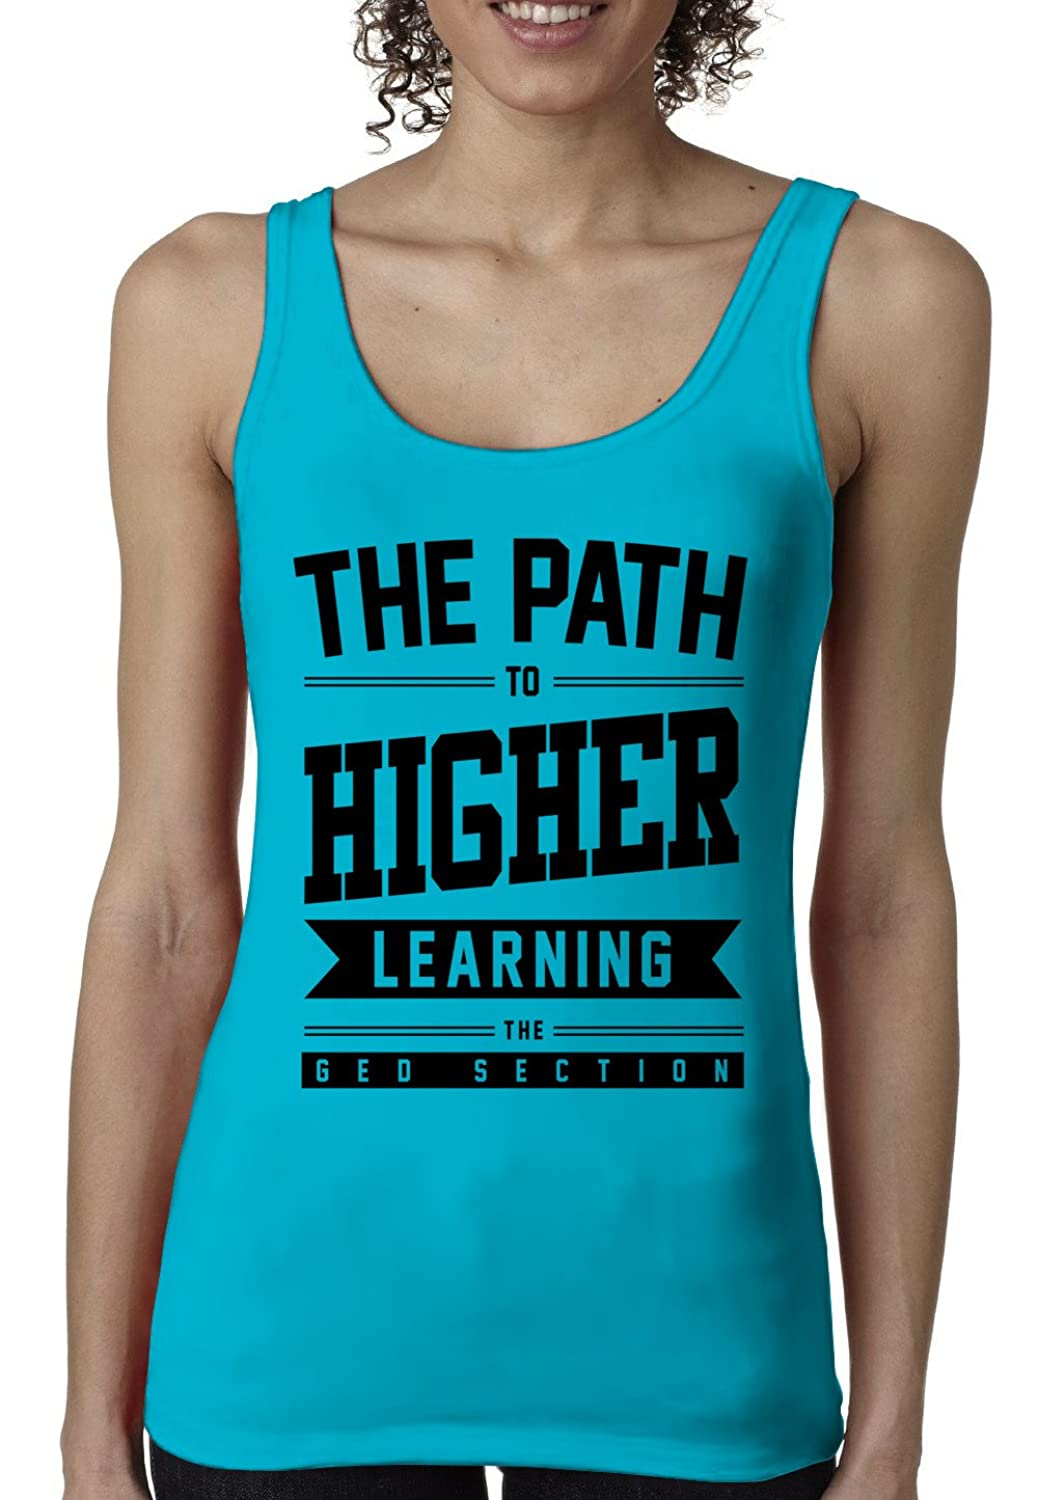 The GED Section Women's Higher Learning Tank-top